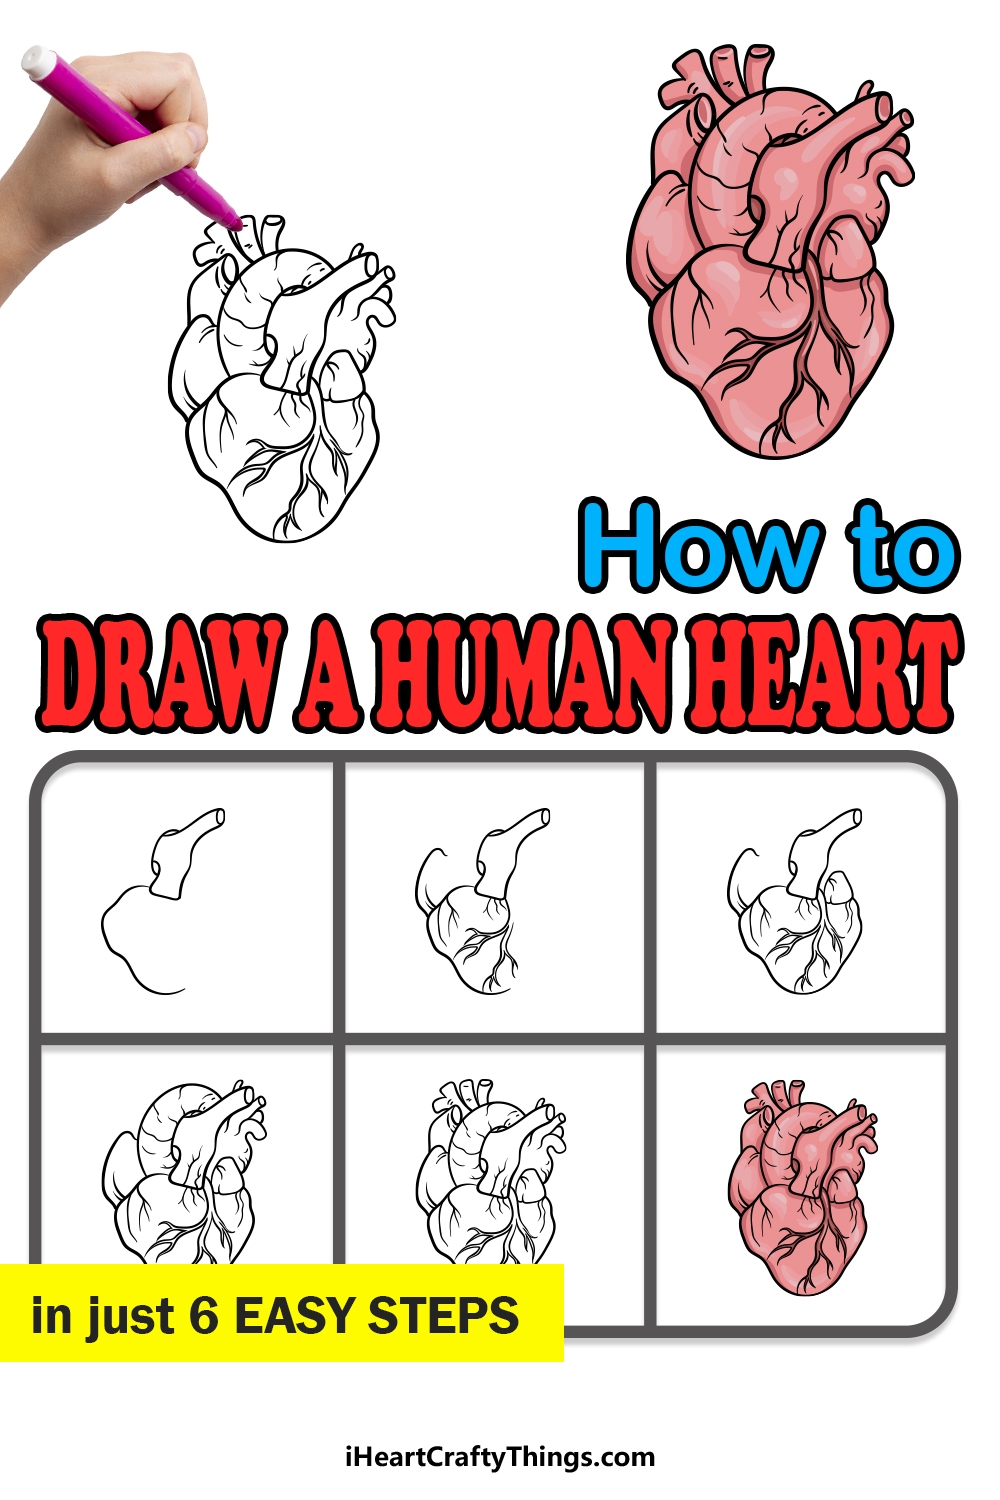 how to draw a human heart in 6 easy steps